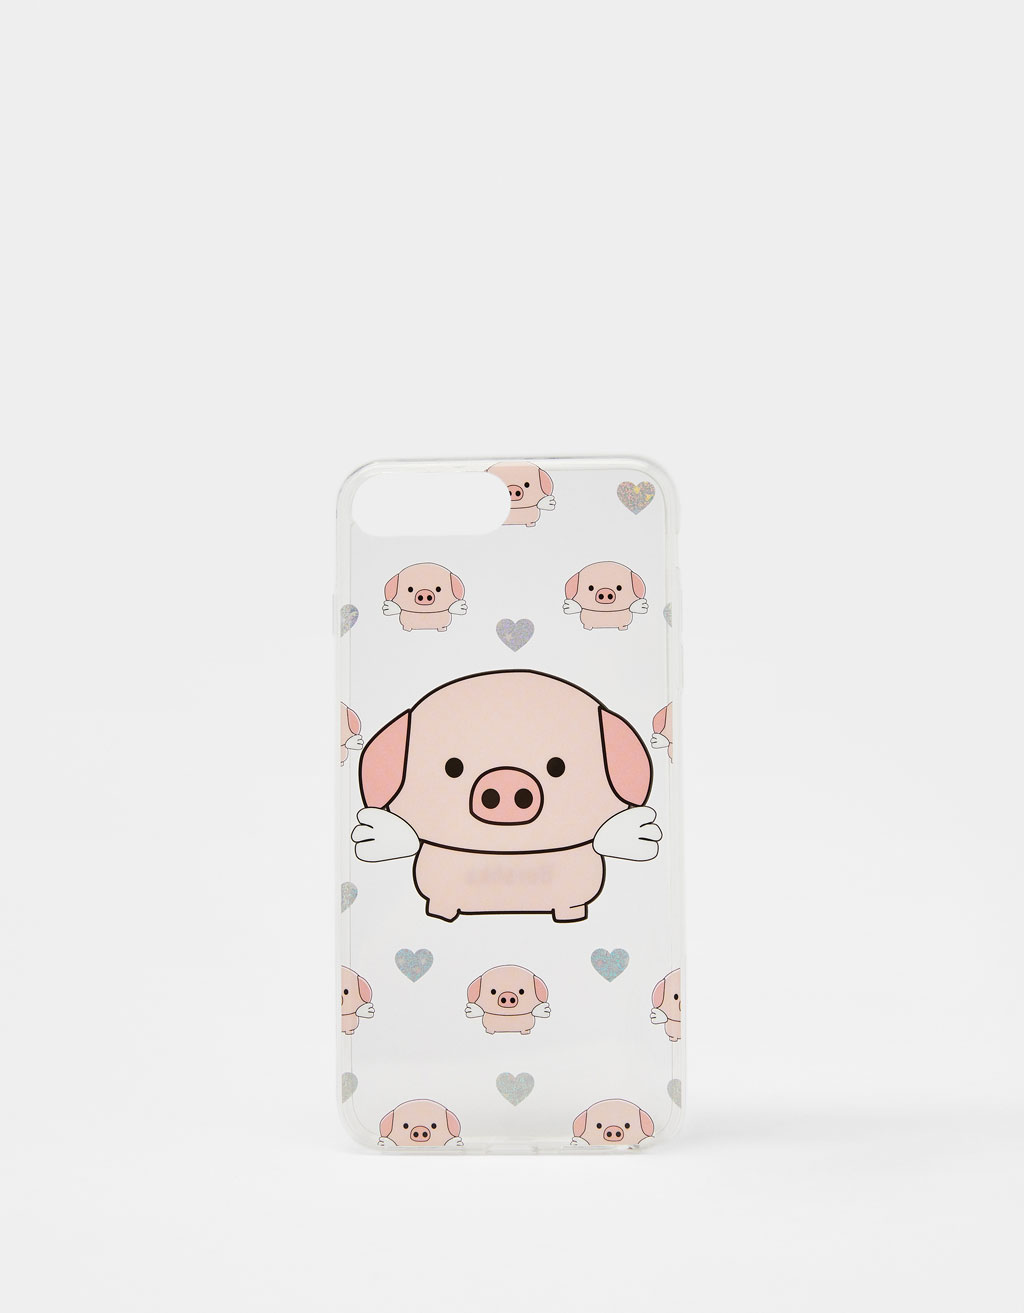 Little Pig iPhone 6 Plus/7 Plus/8 Plus case